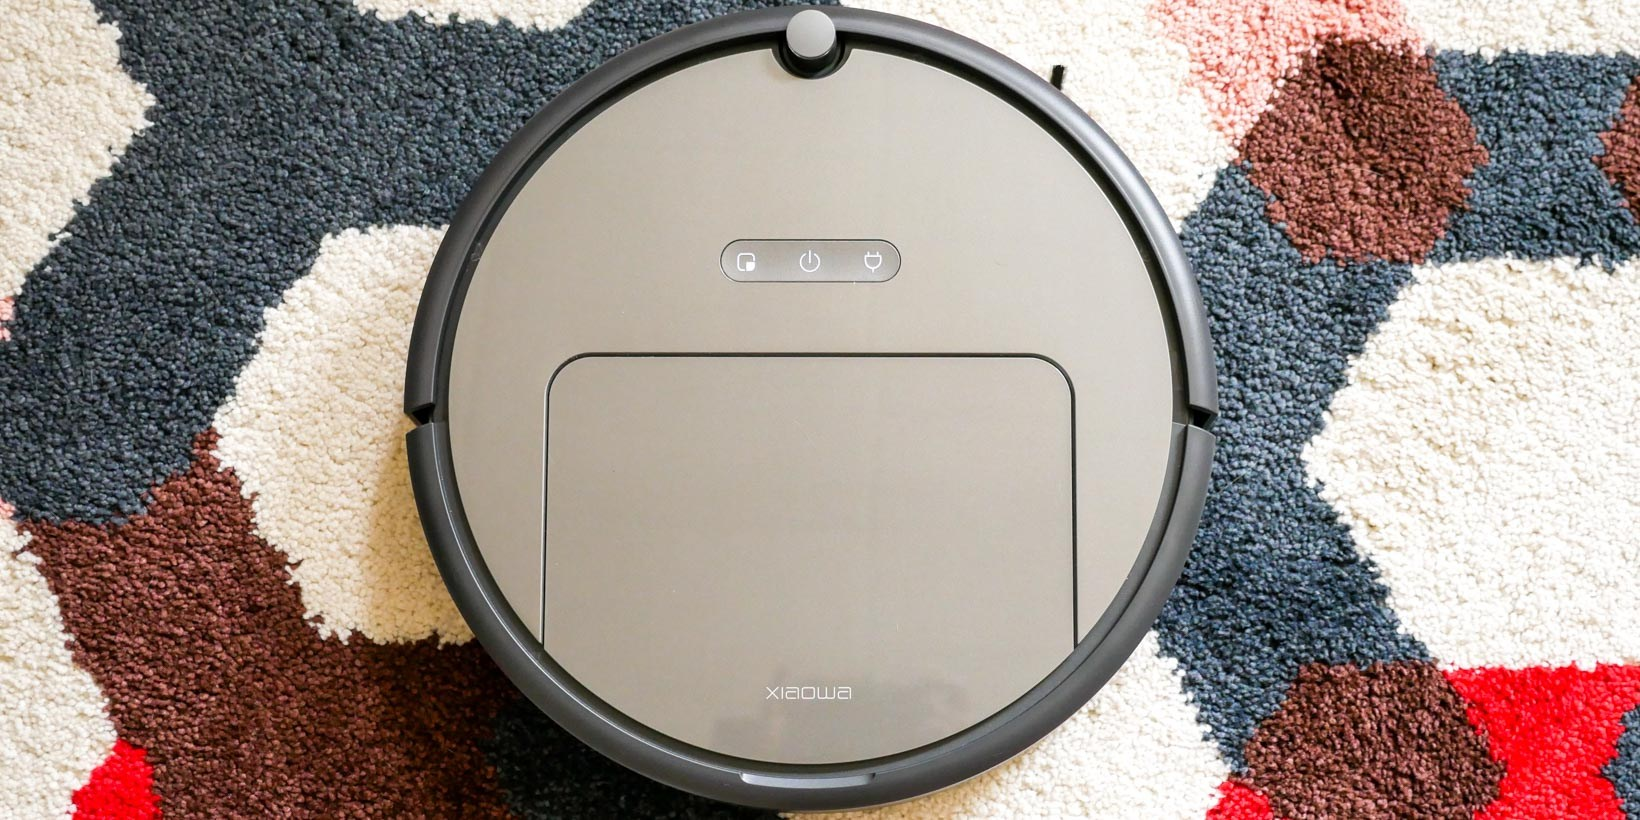 Most Powerful Robot Vacuum Yet, But Is It Good Enough? Roborock E35 Review